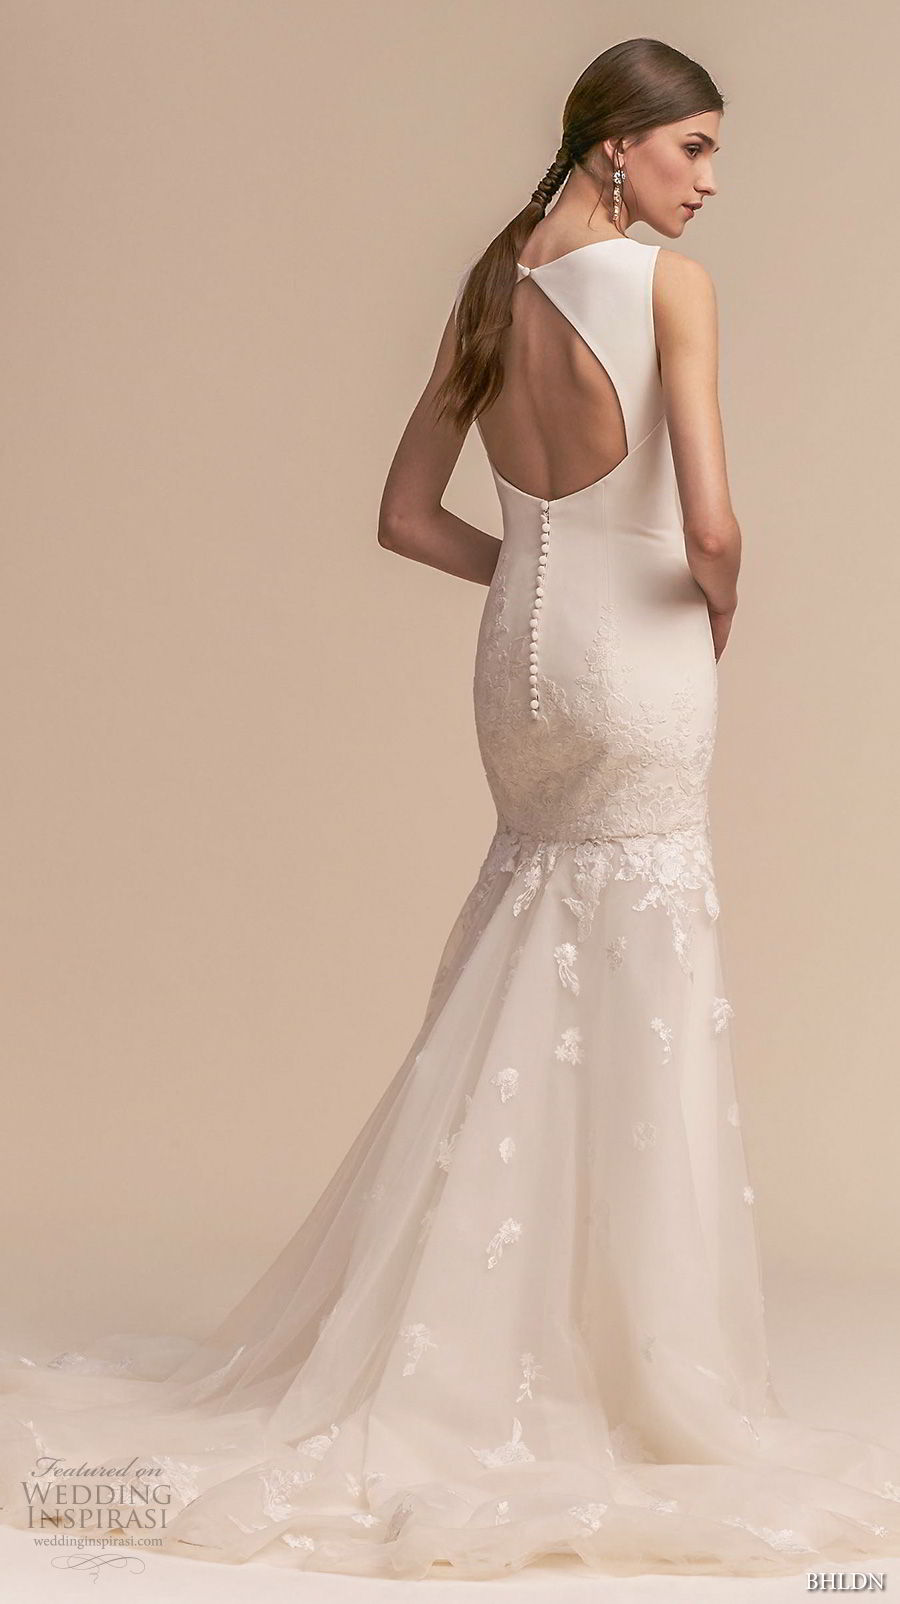 bhldn 2018 whispers bridal sleeveless bateau neck simple clean embellished skirt trumpet wedding dress keyhole back short train (4) bv